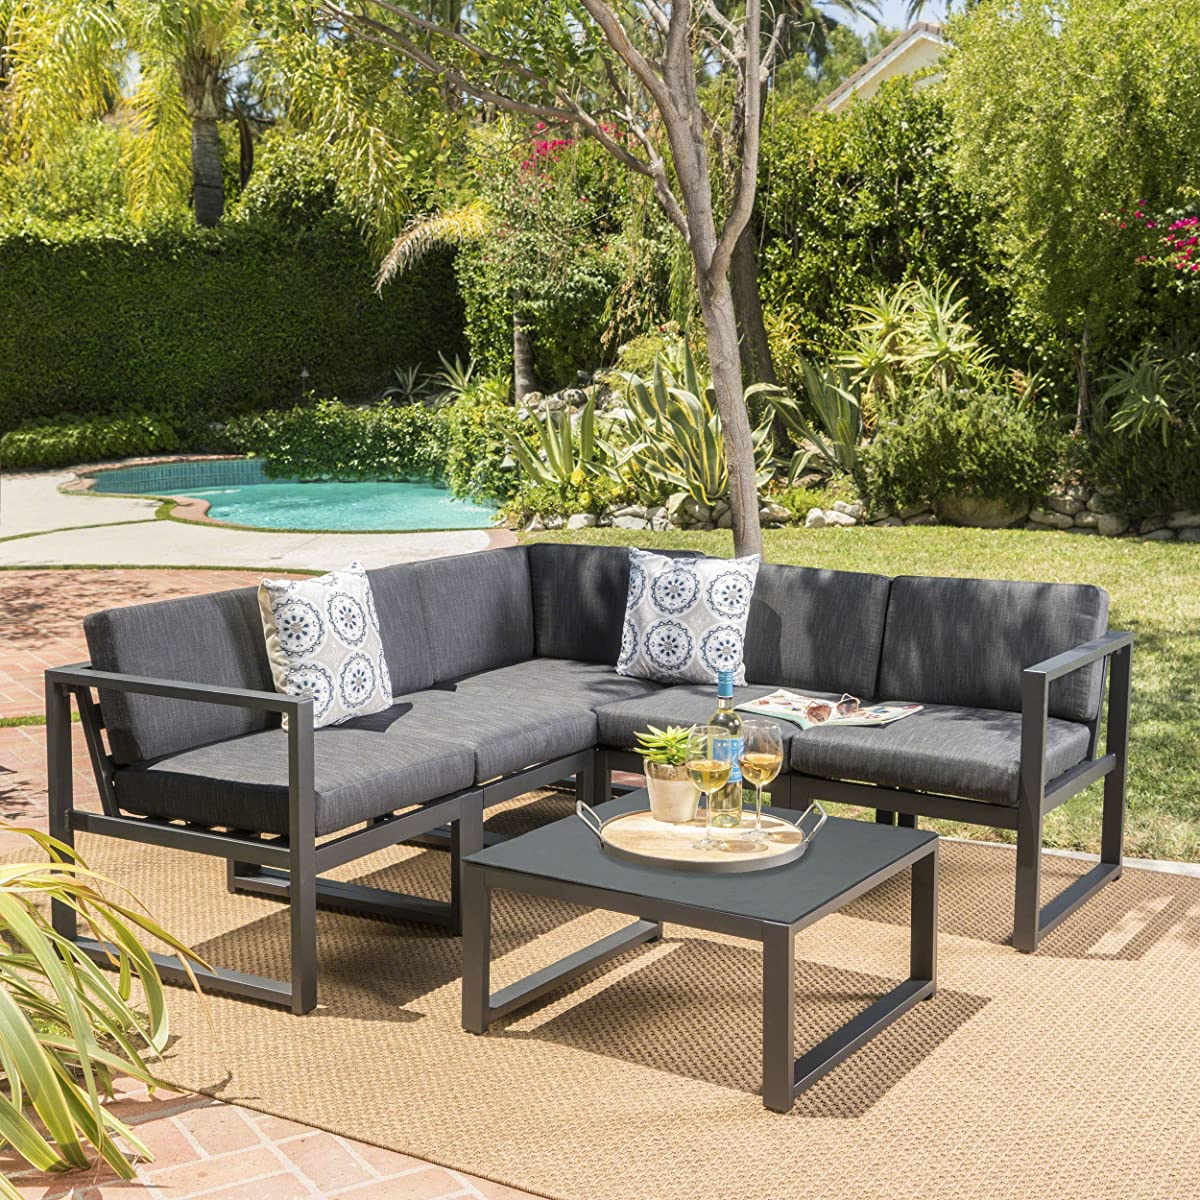 Nealie Outdoor Black Aluminum V Shaped 6 Pc Sofa Set w/Simulated Stone Tempered Glass Top Coffee Table & Dark Grey Water Resistant Cushions